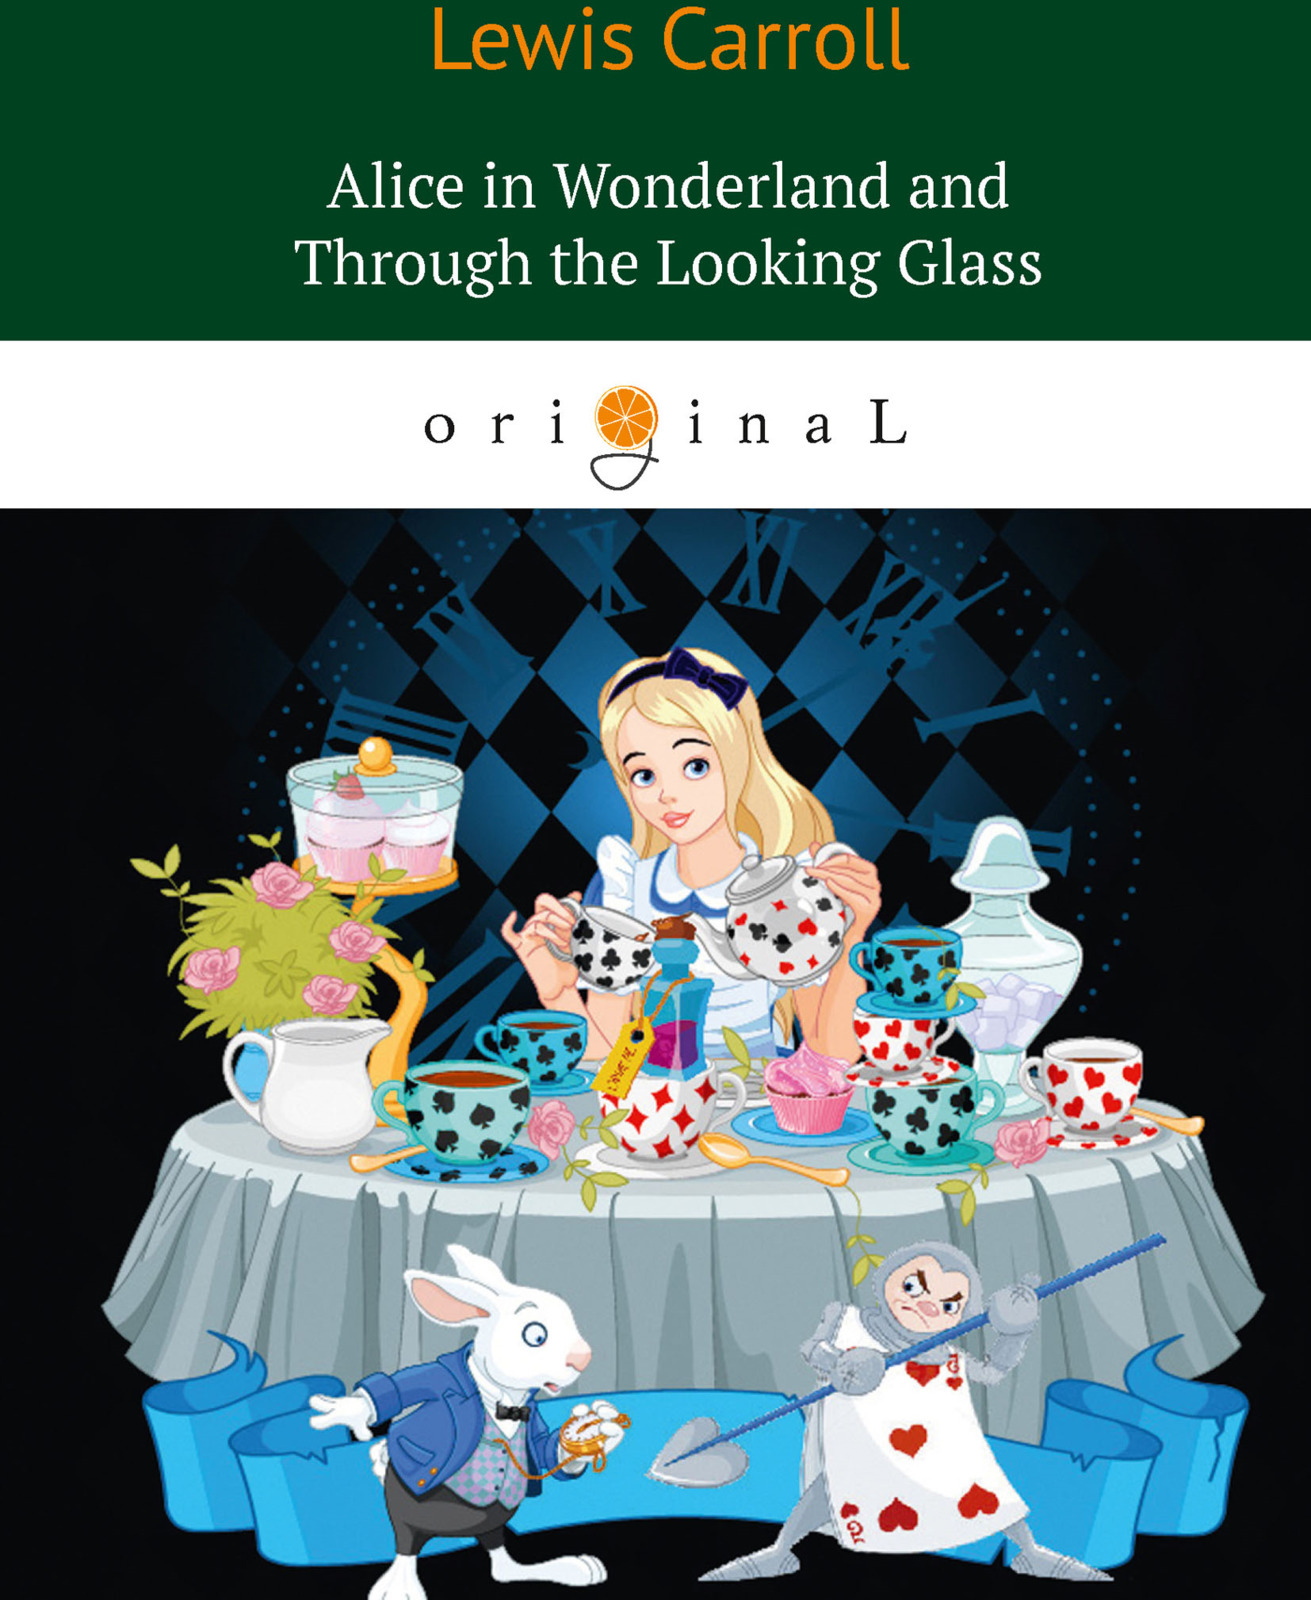 L. Carroll Alice's Adventures in Wonderland and Through the Looking Glass carroll l alice s adventures in wonderland through the looking glass книга на английском языке